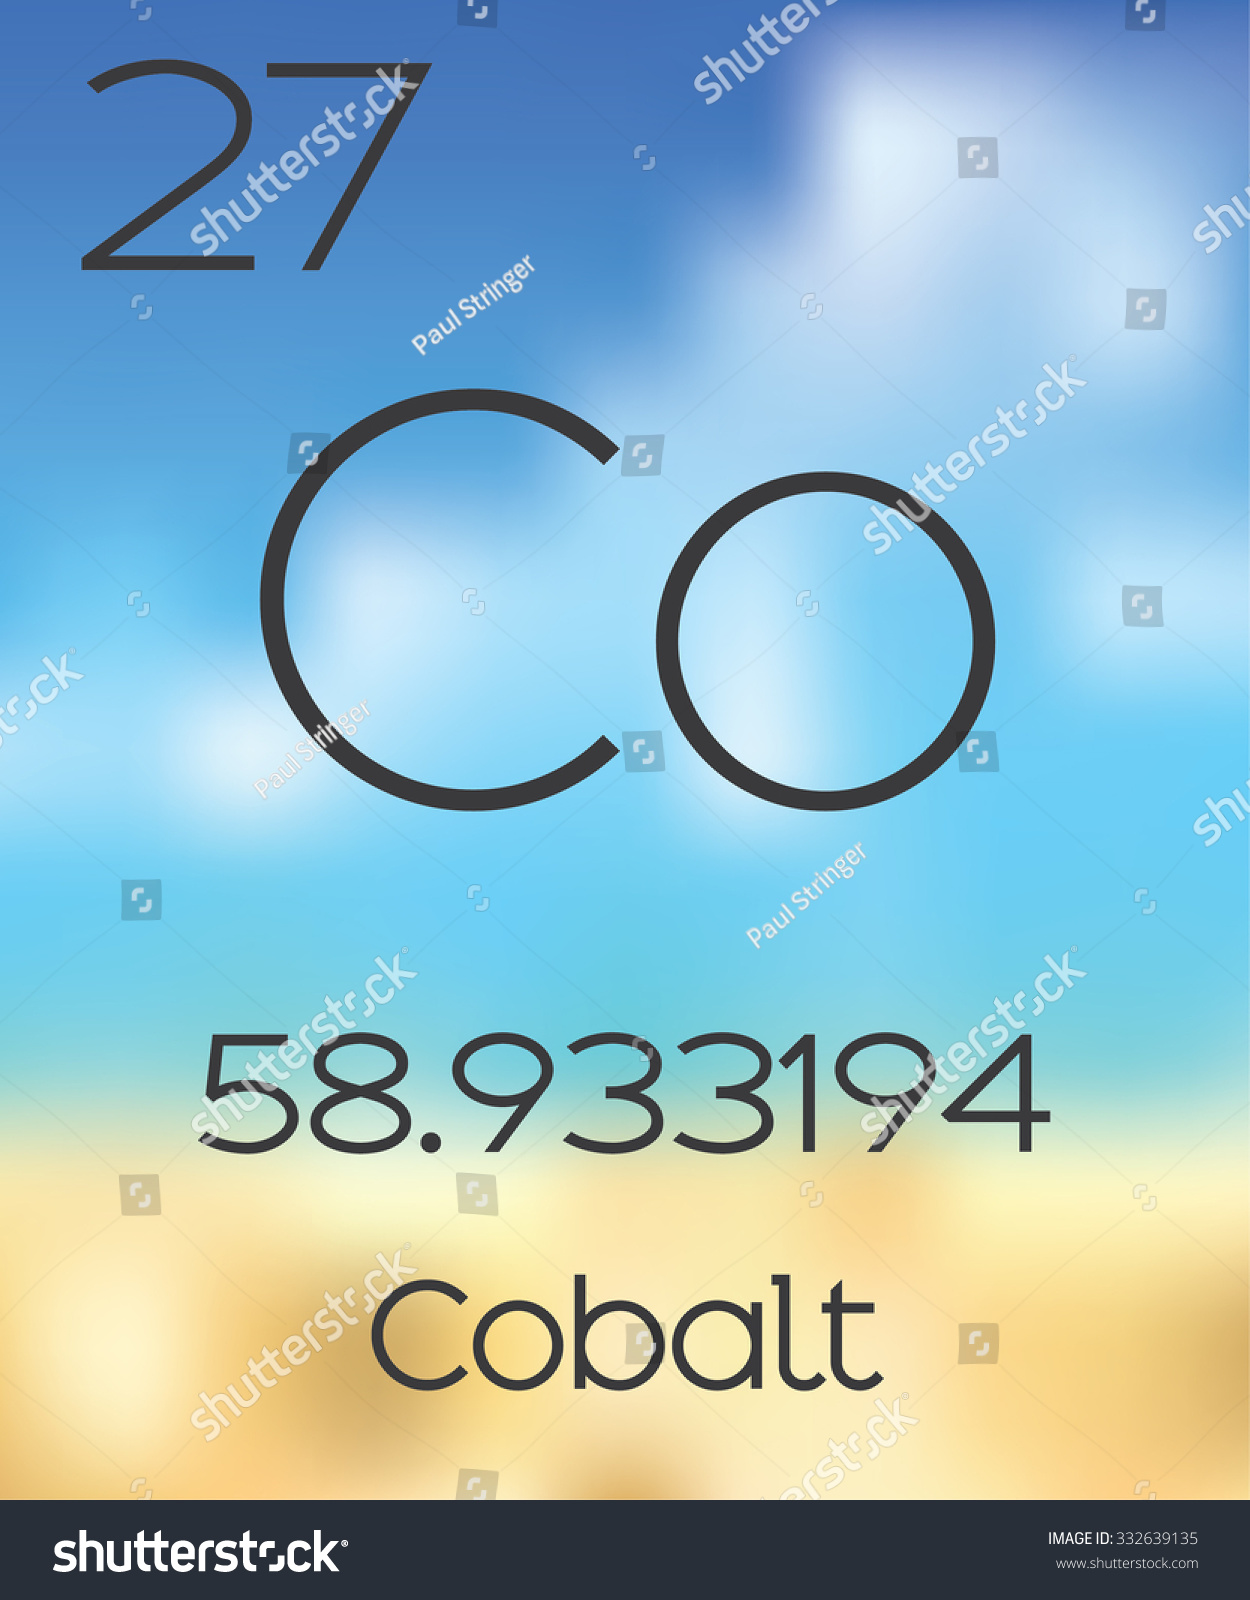 Oxygen facts periodic table image collections periodic table images cobalt periodic table facts gallery periodic table images cobalt facts periodic table the best fact in gamestrikefo Choice Image